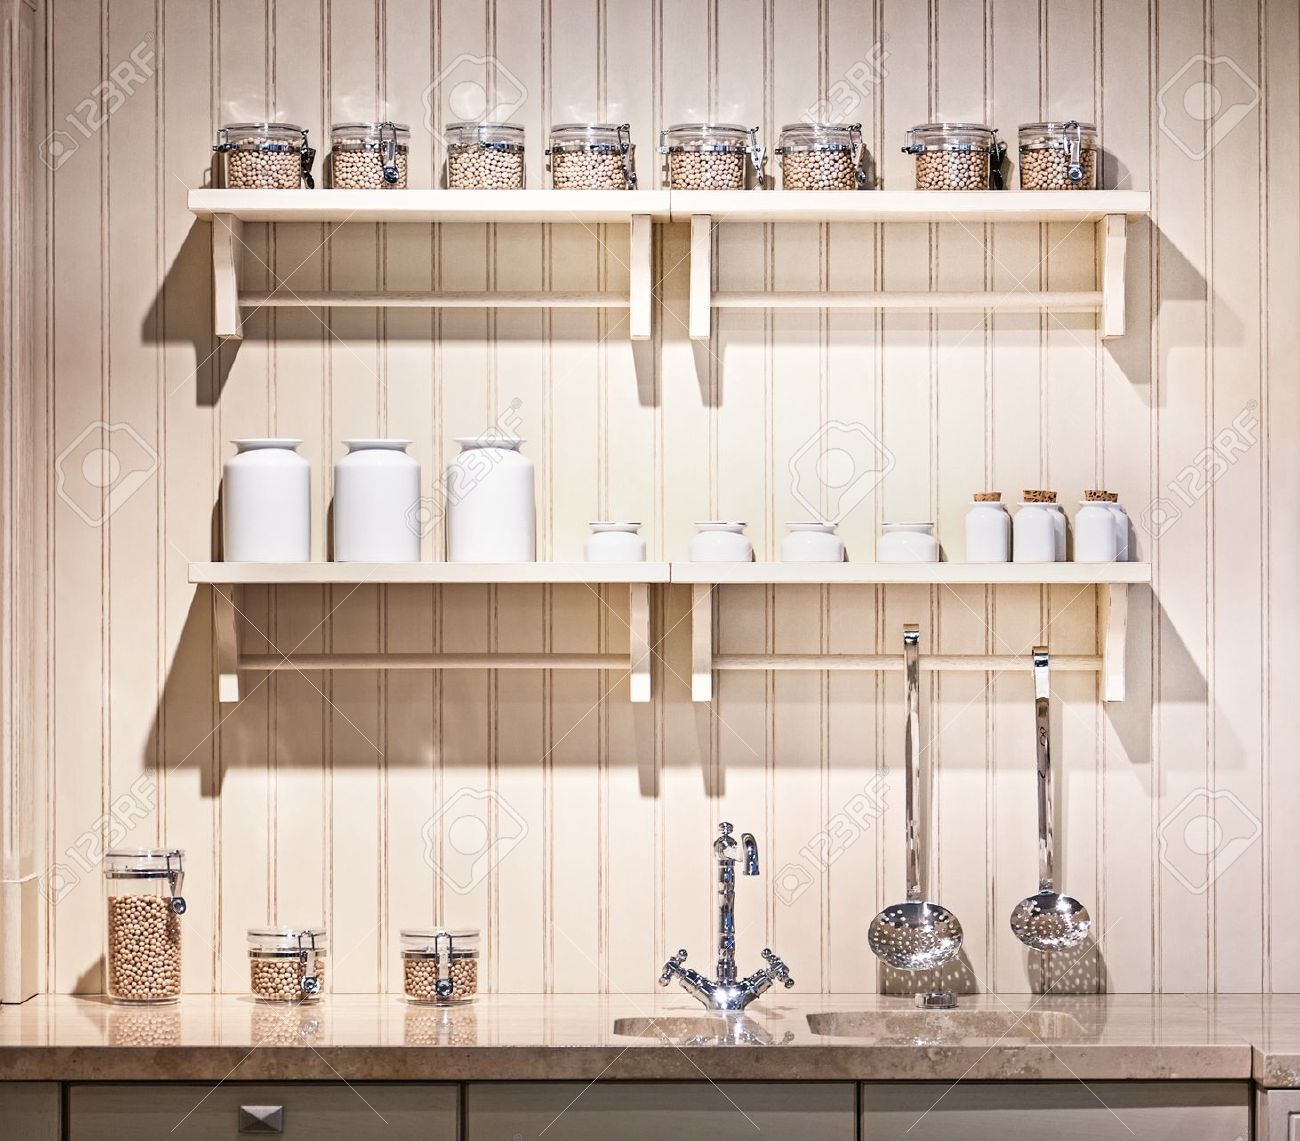 Beautiful Old Fashioned Kitchen With Shelves Stock Photo Picture And Royalty Free Image 17325623